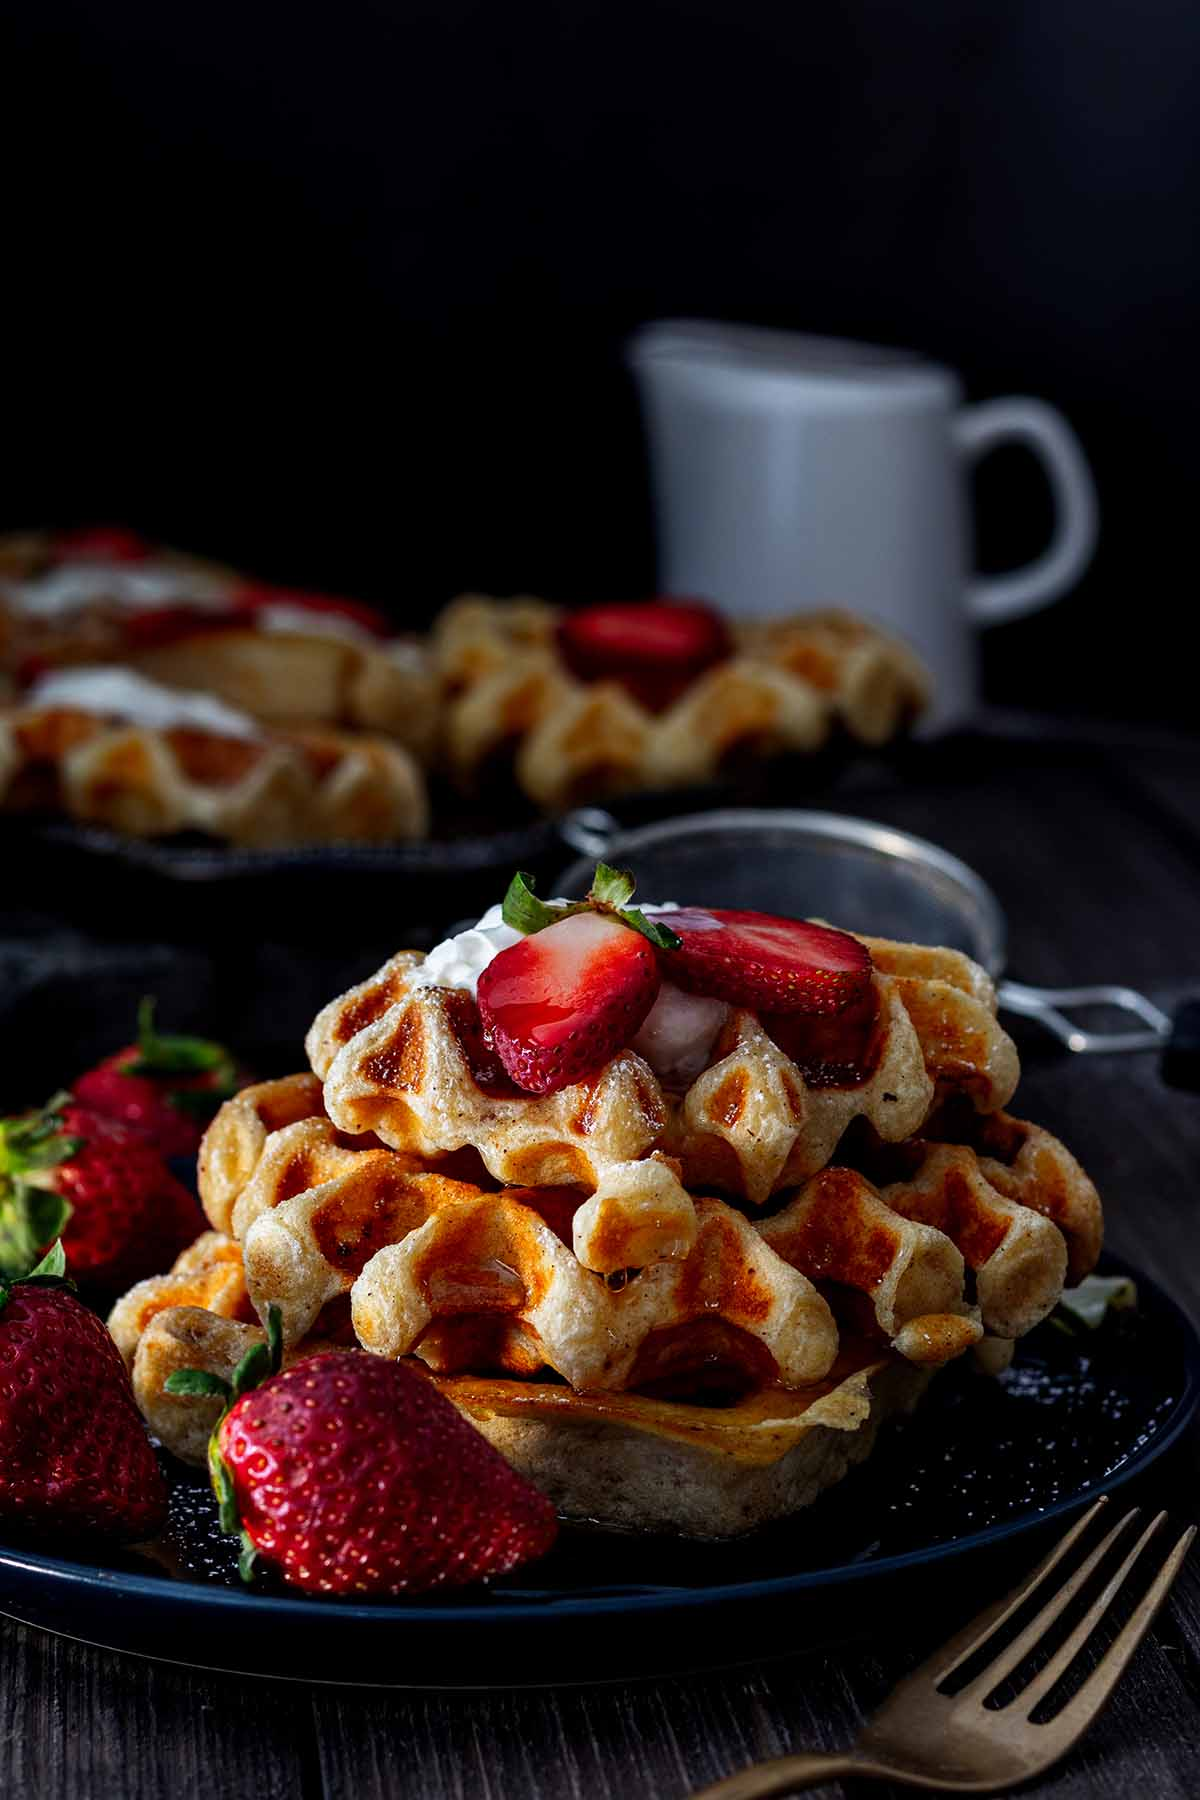 Stack of waffles on a blue plate with strawberries